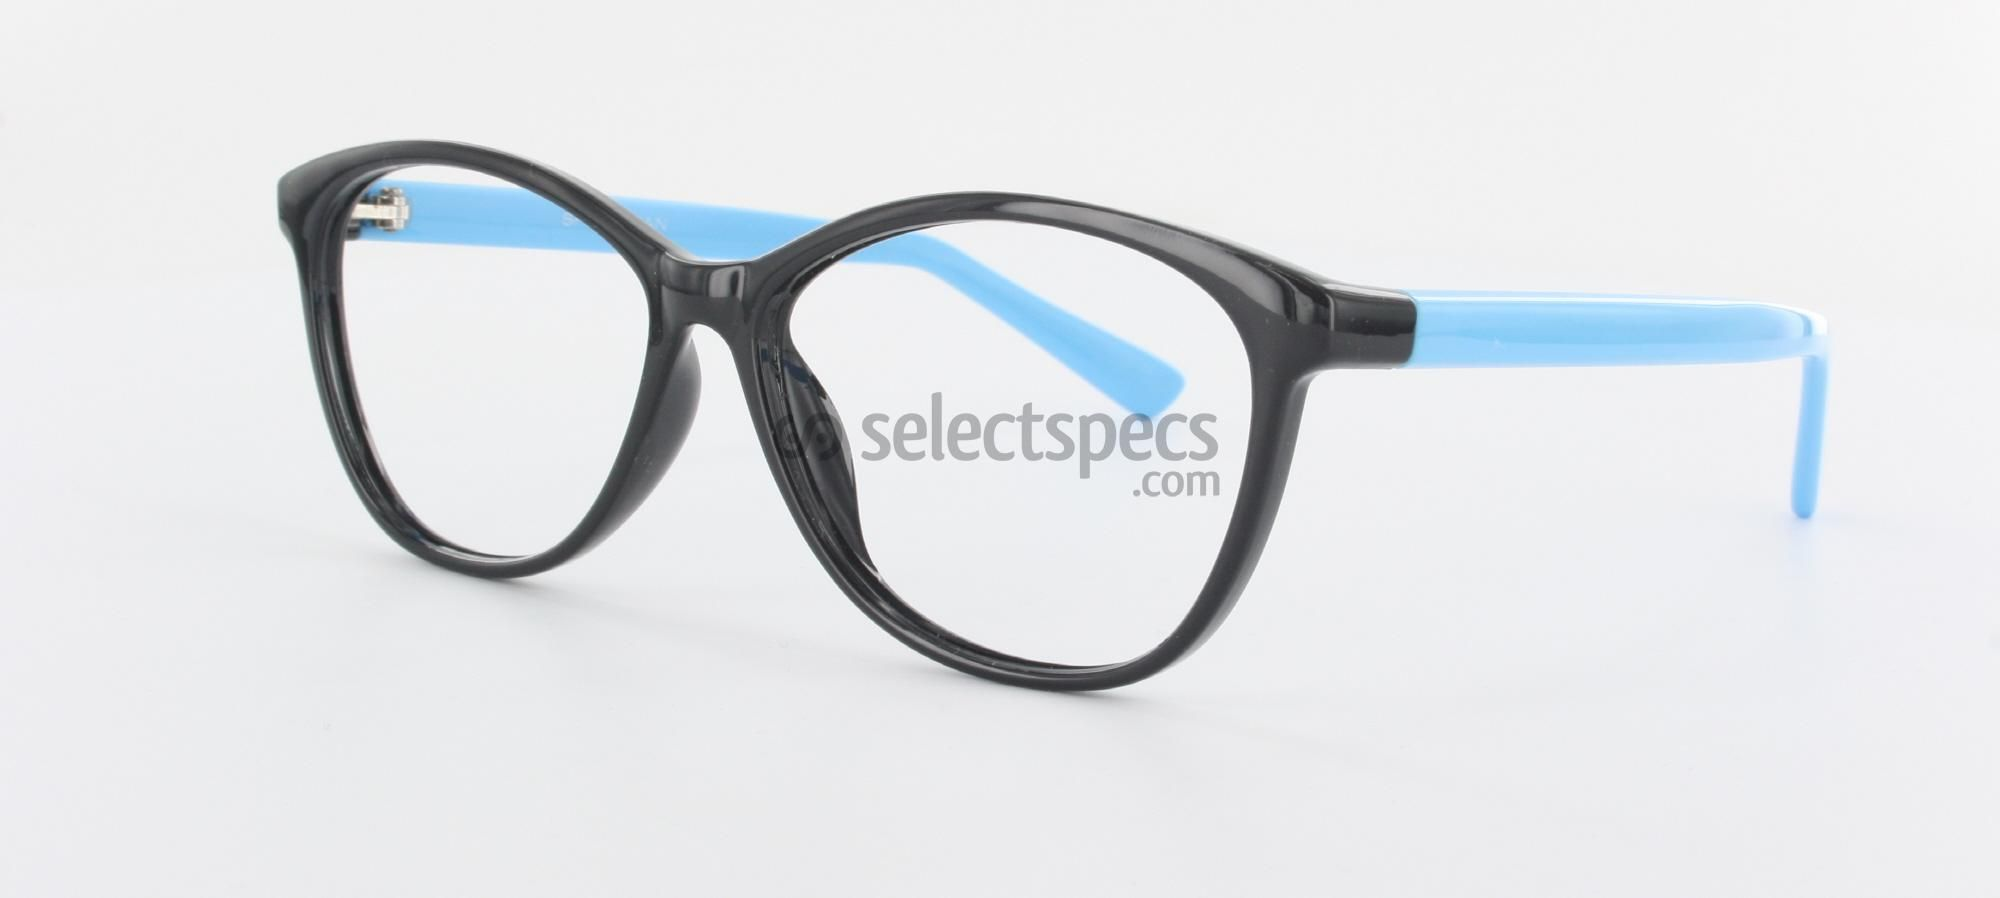 451fe617c8b Savannah 2439 - Black and Blue Glasses. Free lenses   delivery £10